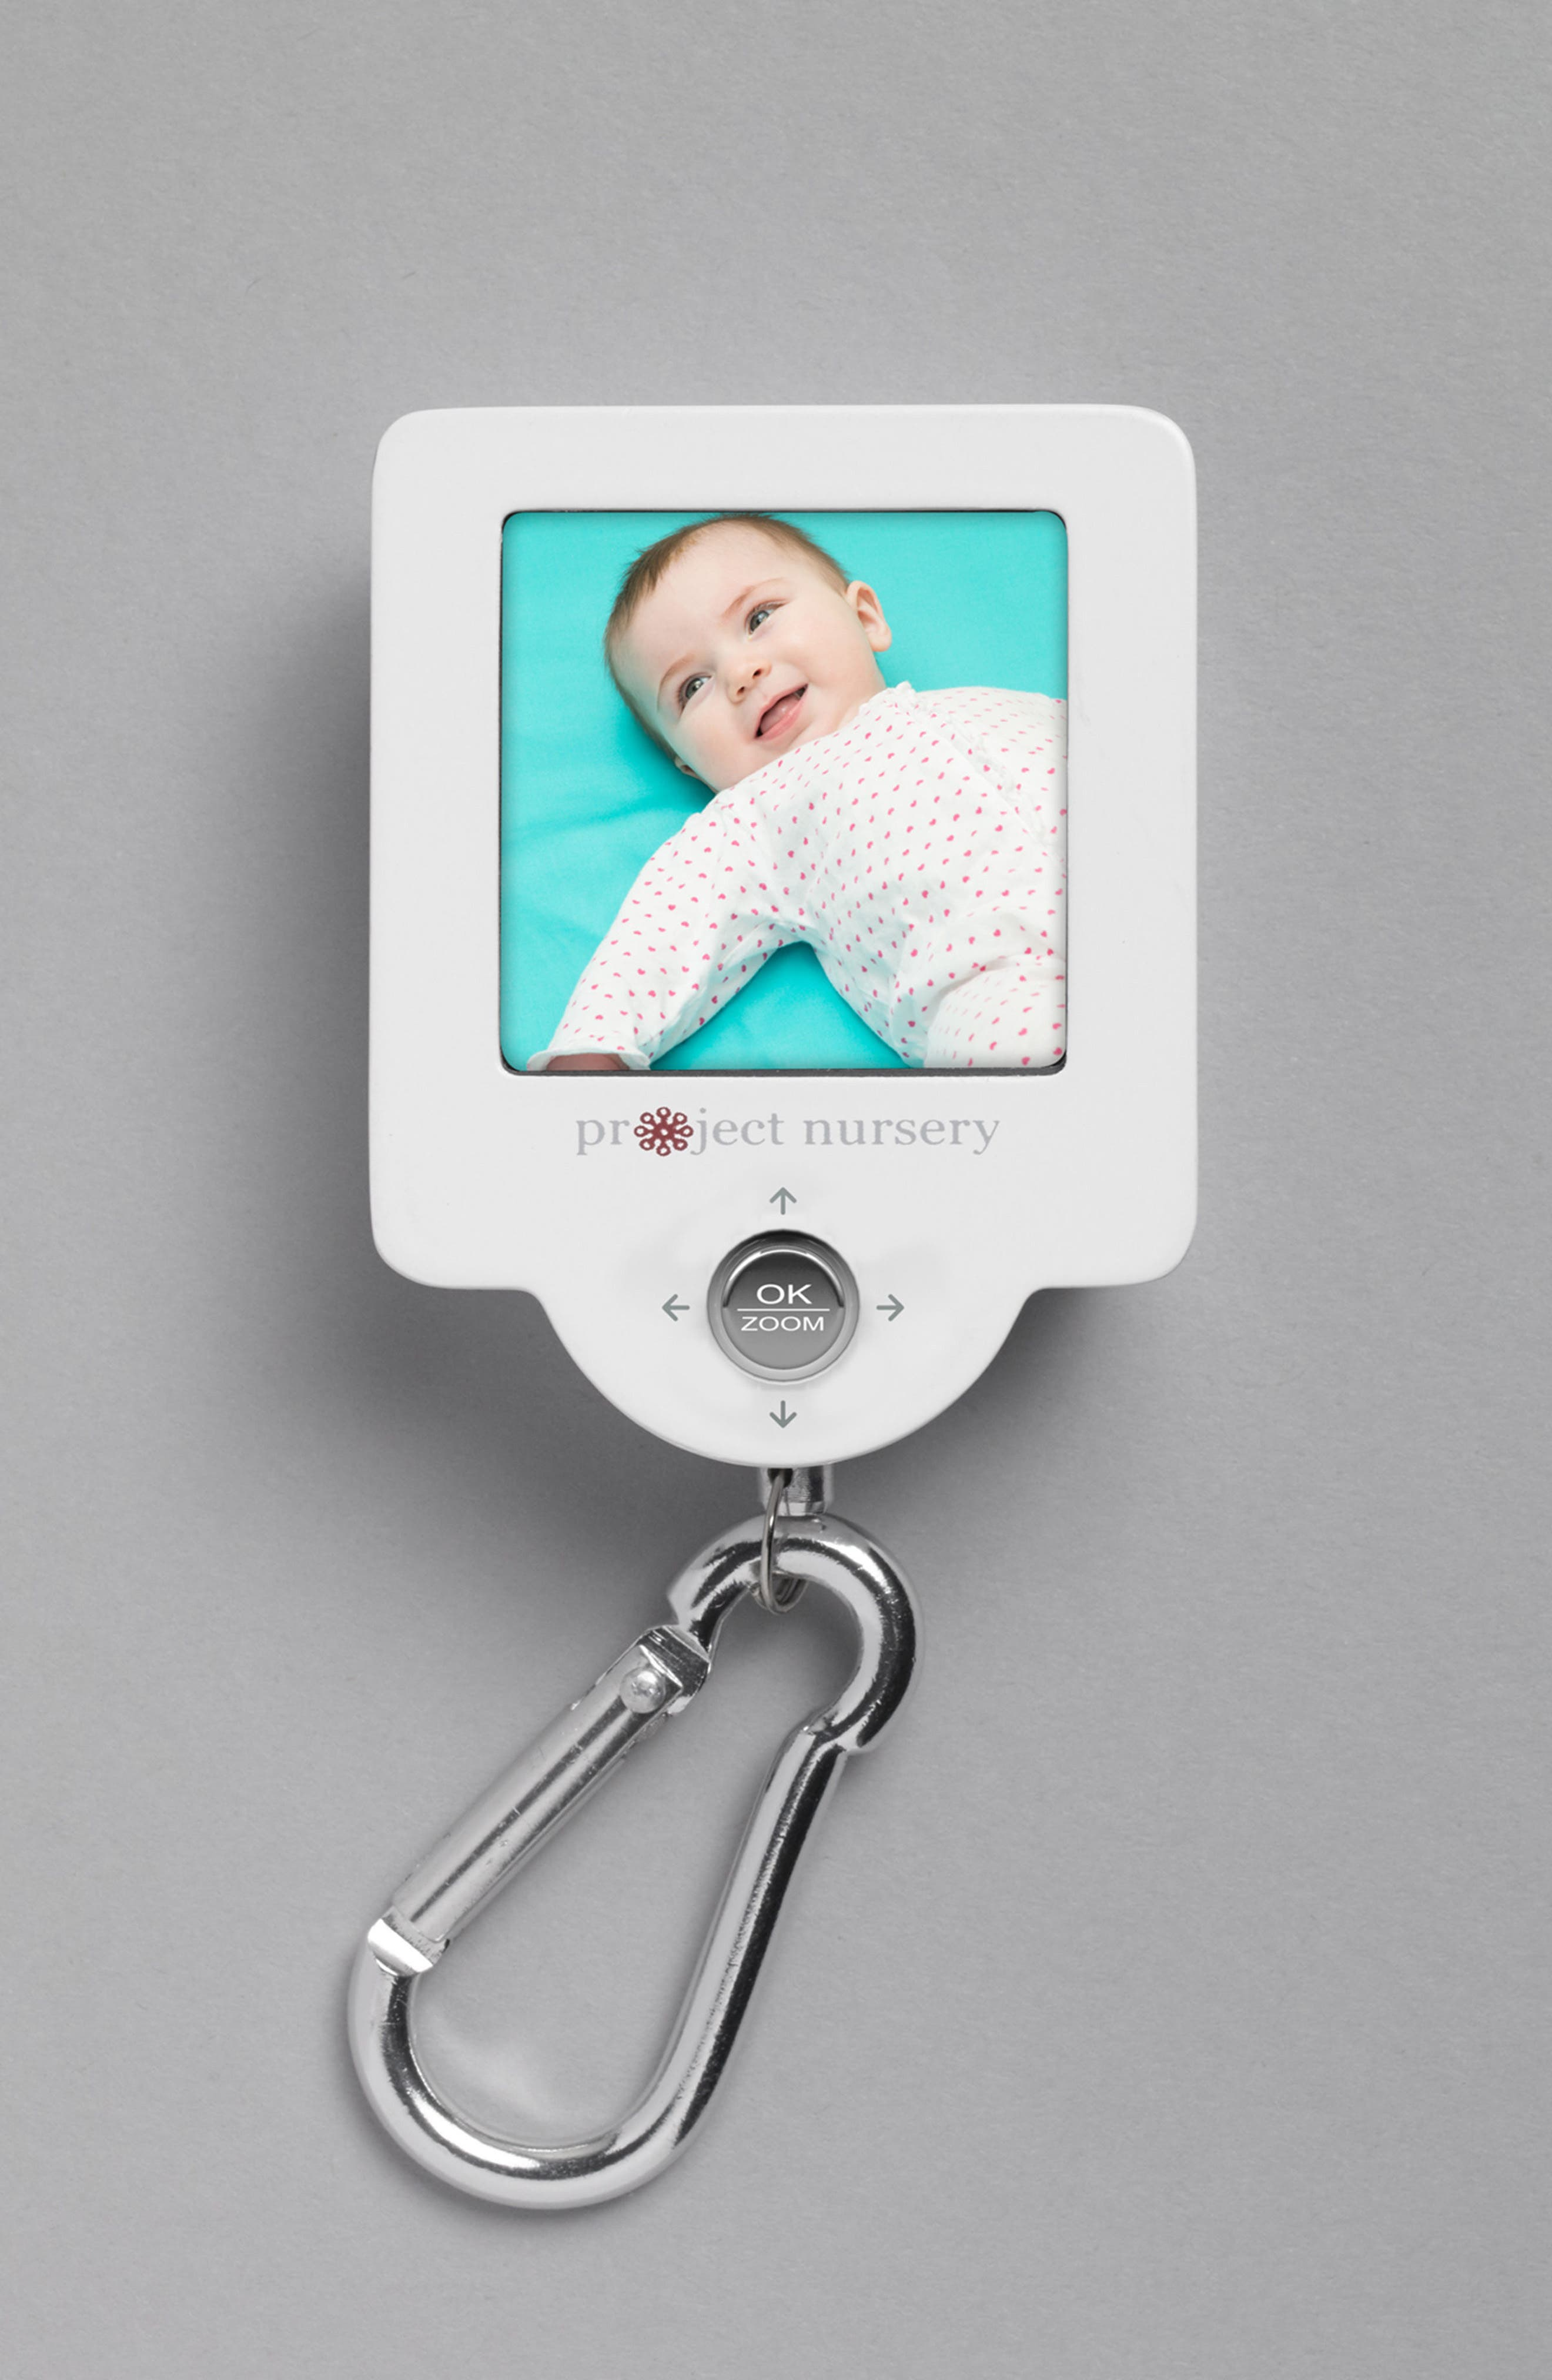 """5"""" High Definition Baby Monitor System with 1 1/2"""" Mini Monitor,                             Alternate thumbnail 2, color,                             100"""